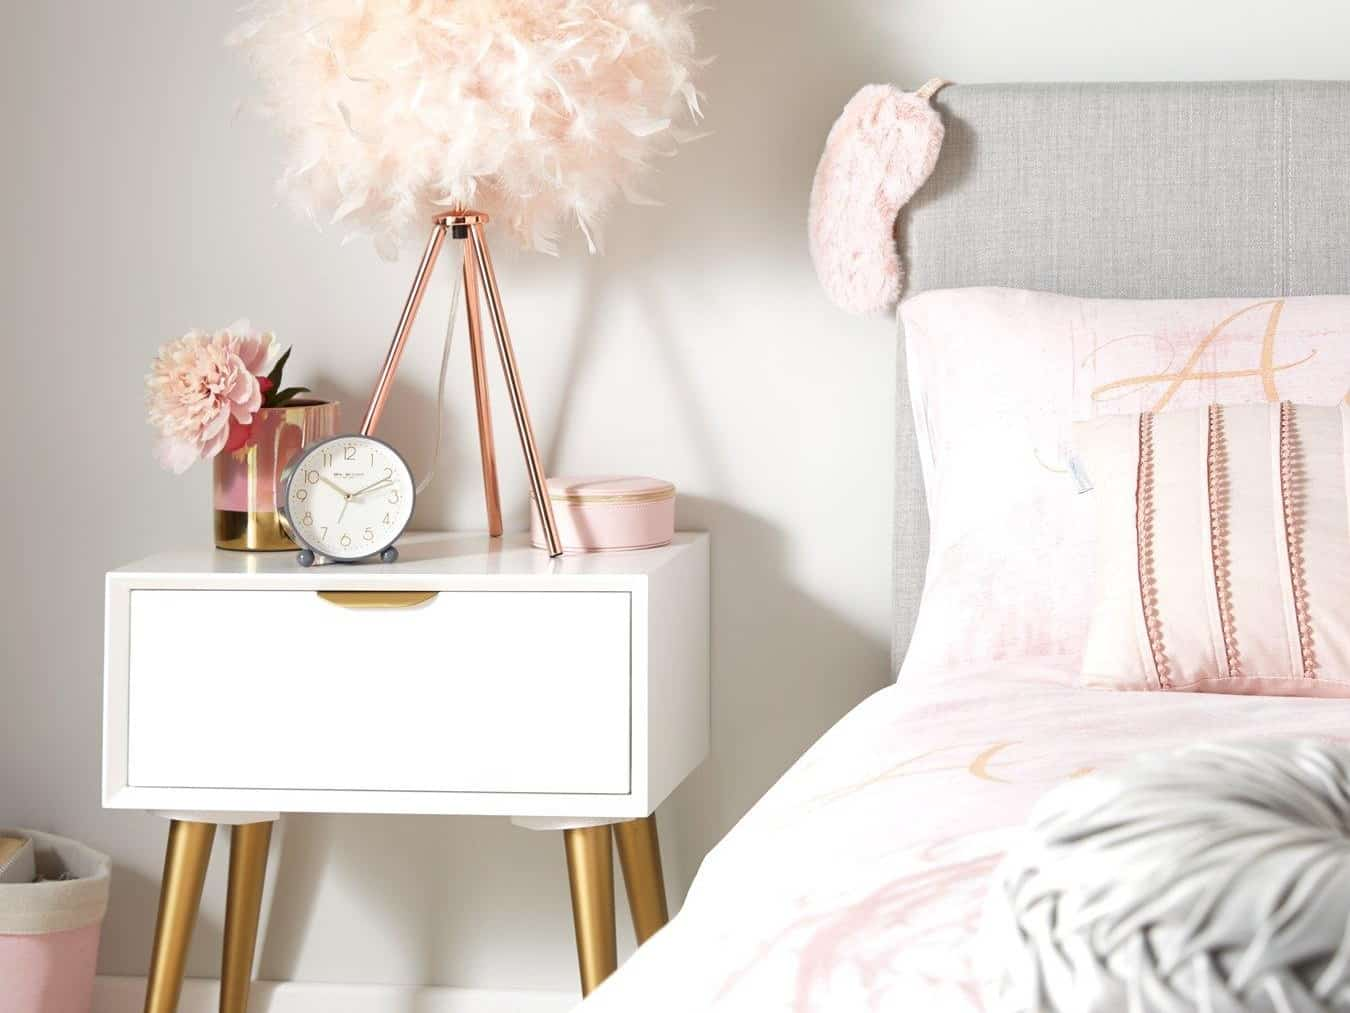 White and gold coloured childrens bedside table